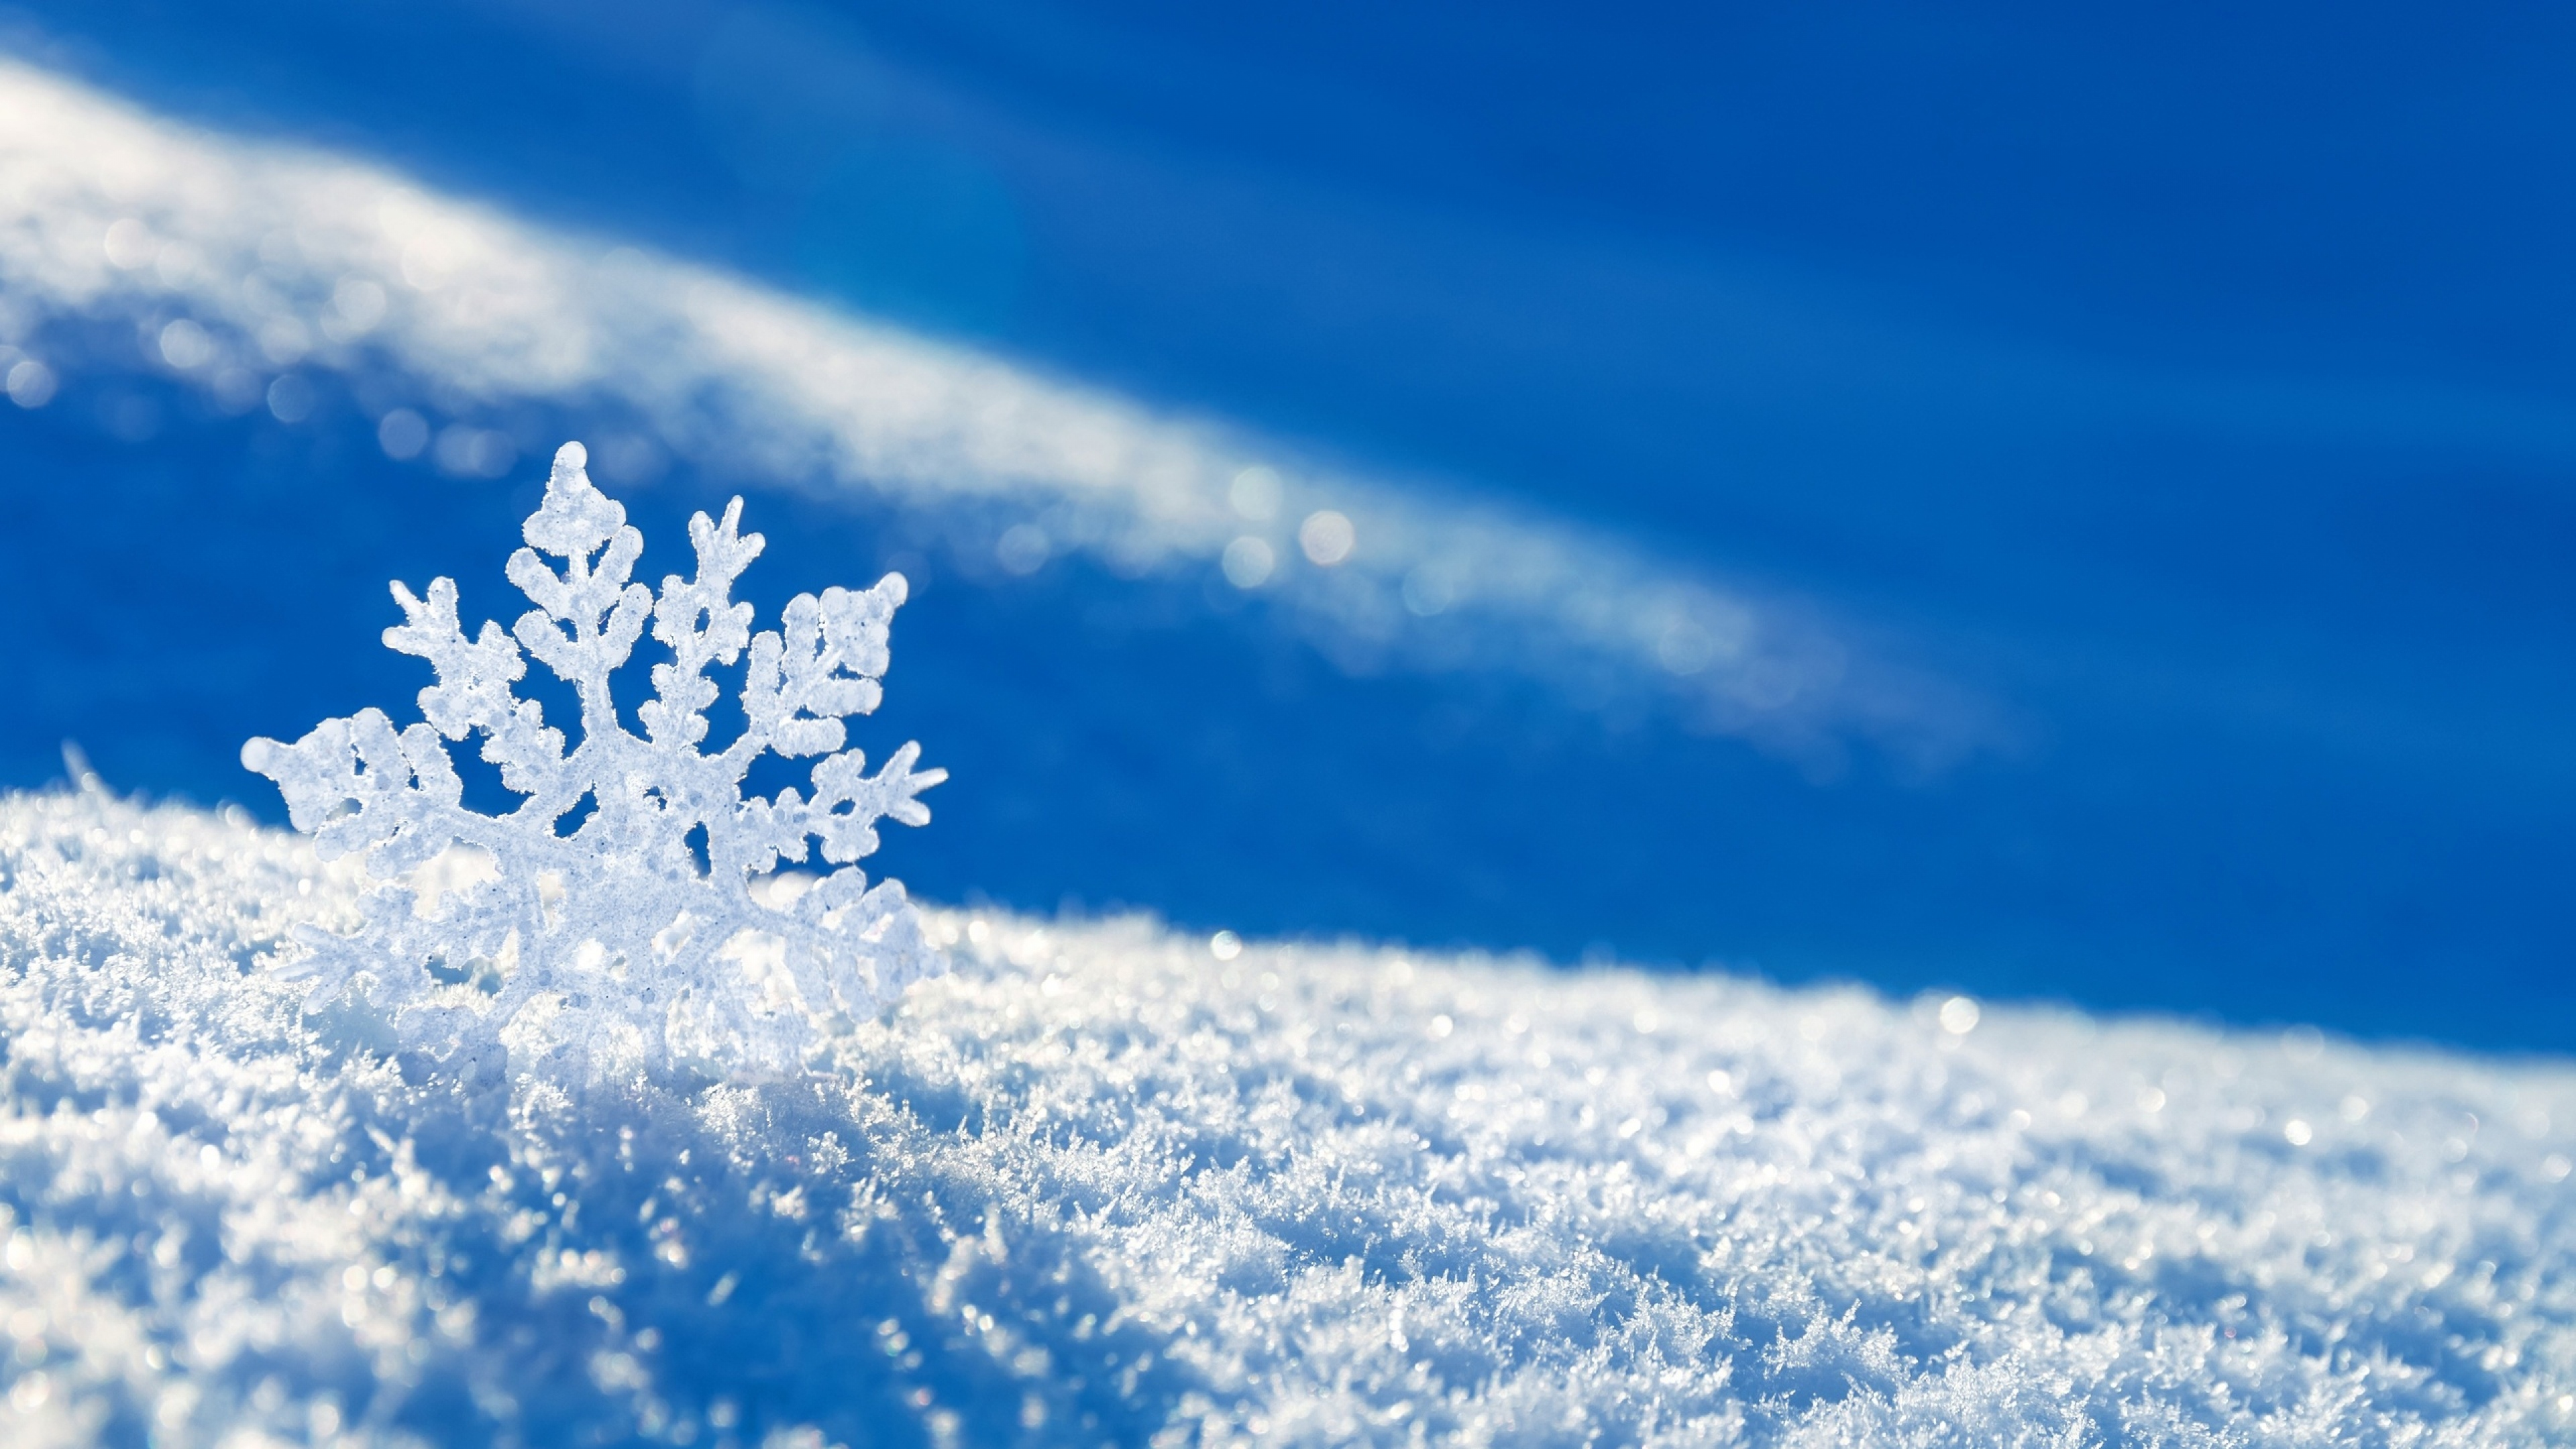 4k Winter Wallpapers High Quality Download 3840x2160